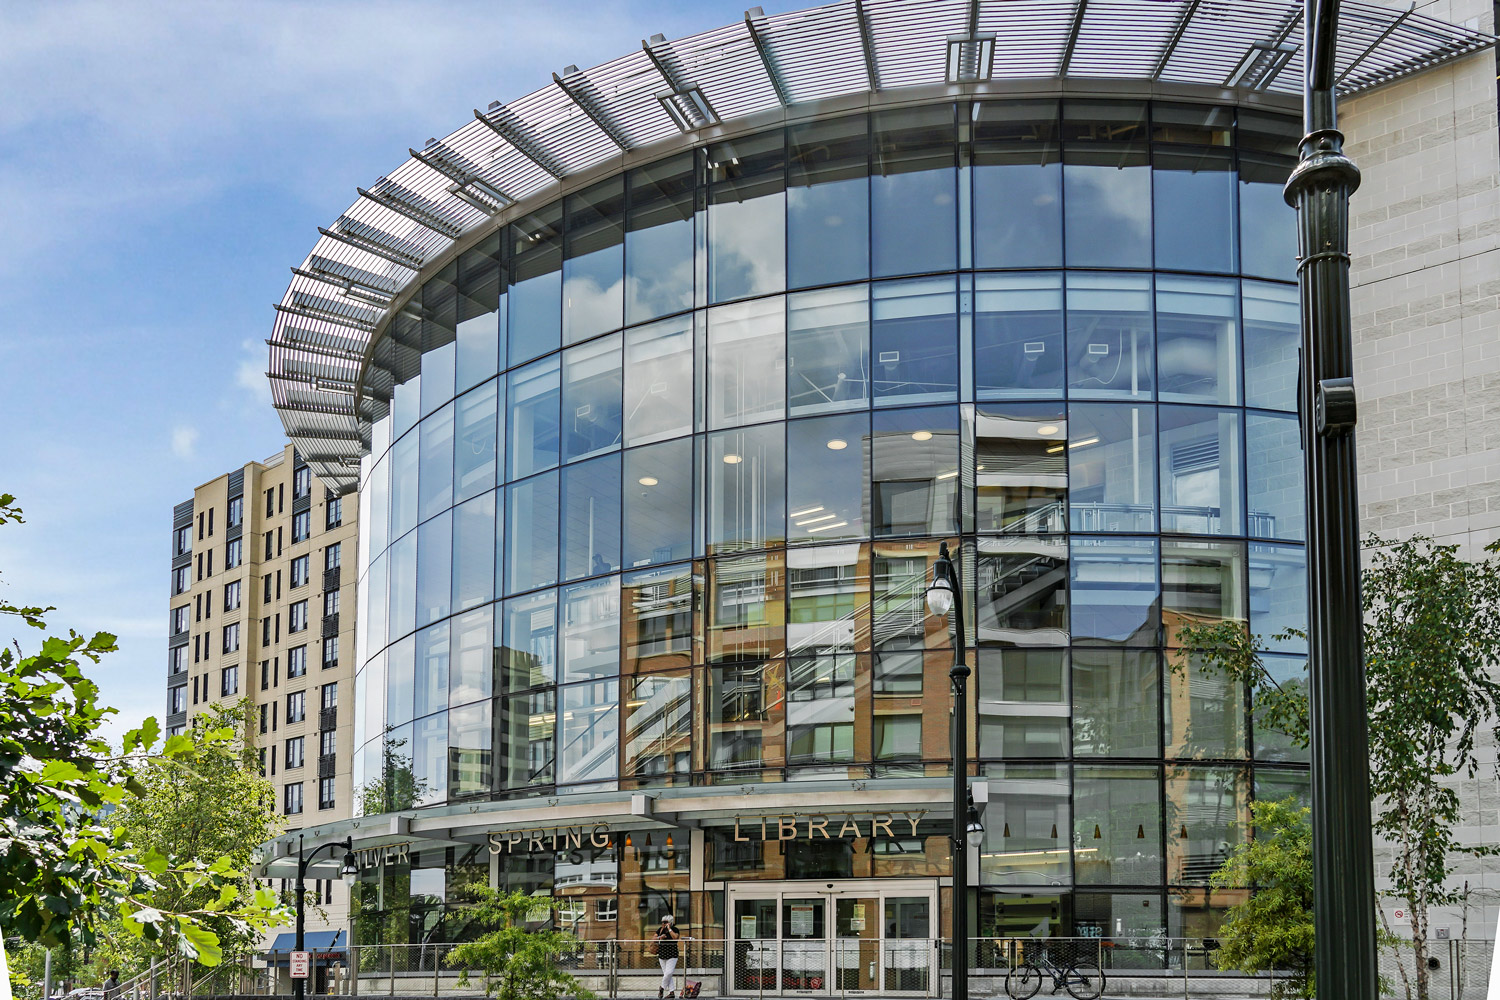 Silver Spring library is 5 minutes from Wayne Manchester Towers Apartments